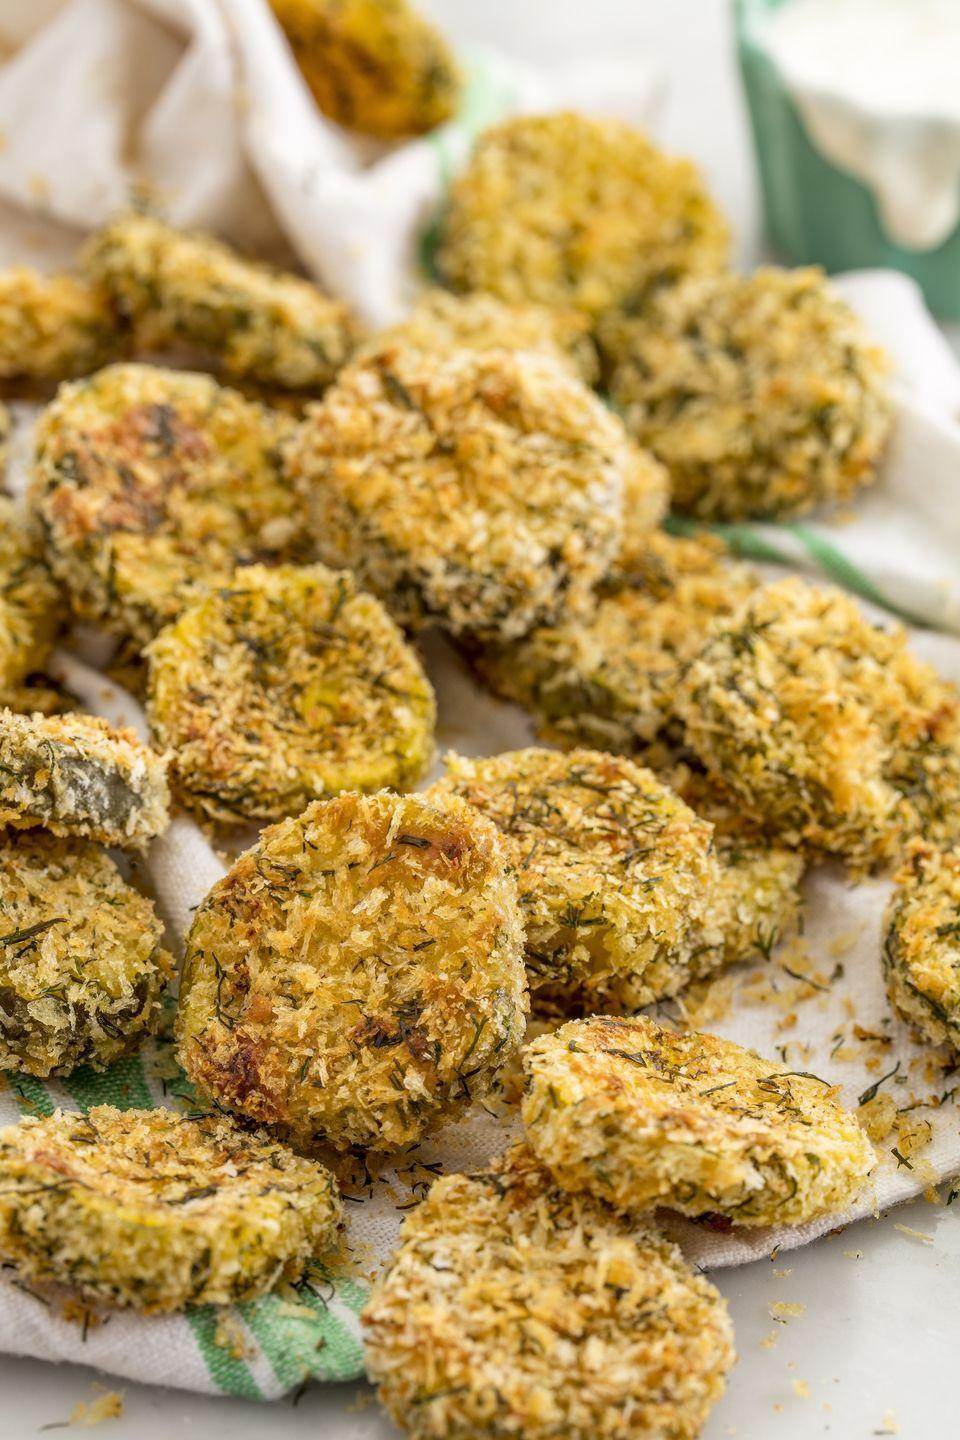 """<p>The crunch on these babies is unreal.</p><p>Get the recipe from <a href=""""https://www.delish.com/cooking/recipe-ideas/recipes/a53332/oven-fried-pickles-recipe/"""" rel=""""nofollow noopener"""" target=""""_blank"""" data-ylk=""""slk:Delish"""" class=""""link rapid-noclick-resp"""">Delish</a>.</p>"""